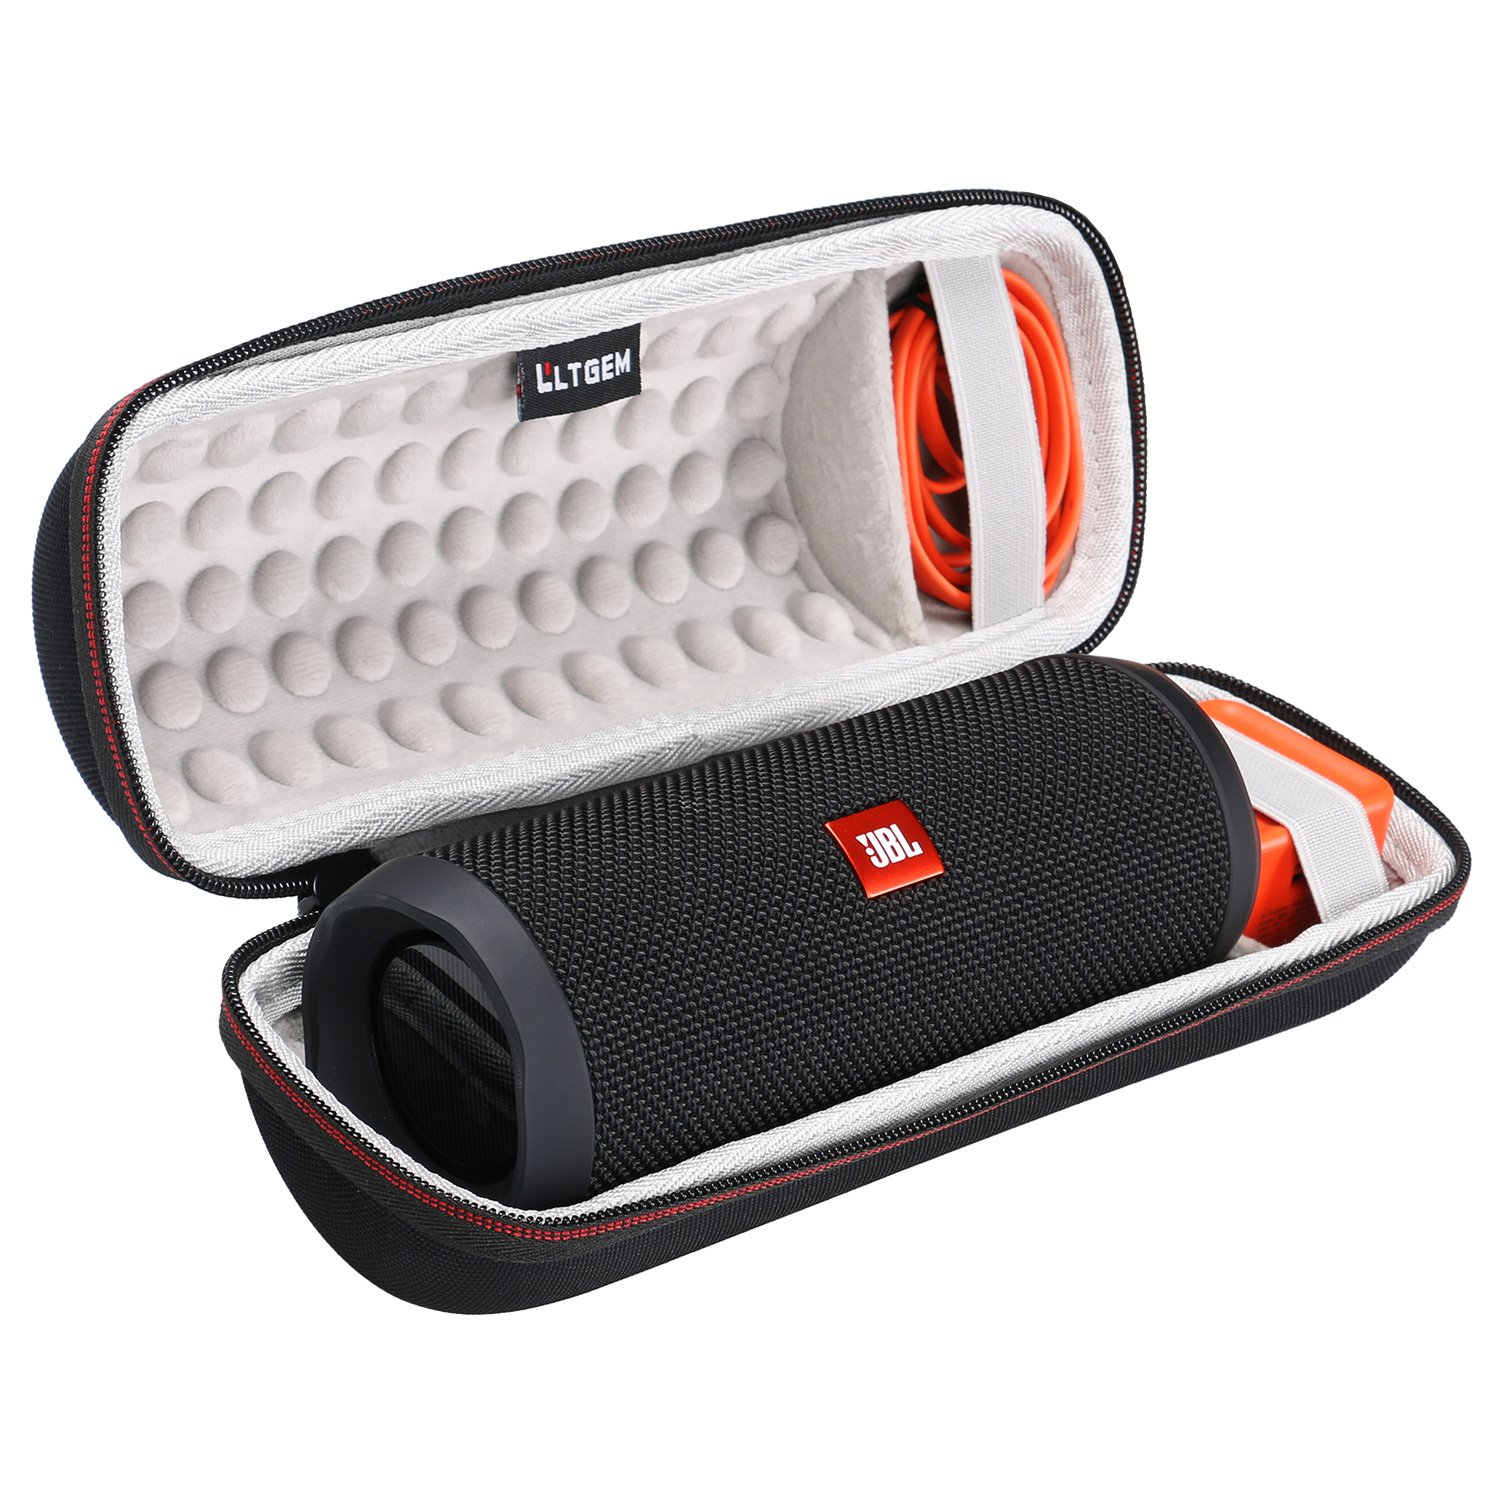 LTGEM Case for JBL Flip 3/4 Waterproof Portable Bluetooth Speaker.